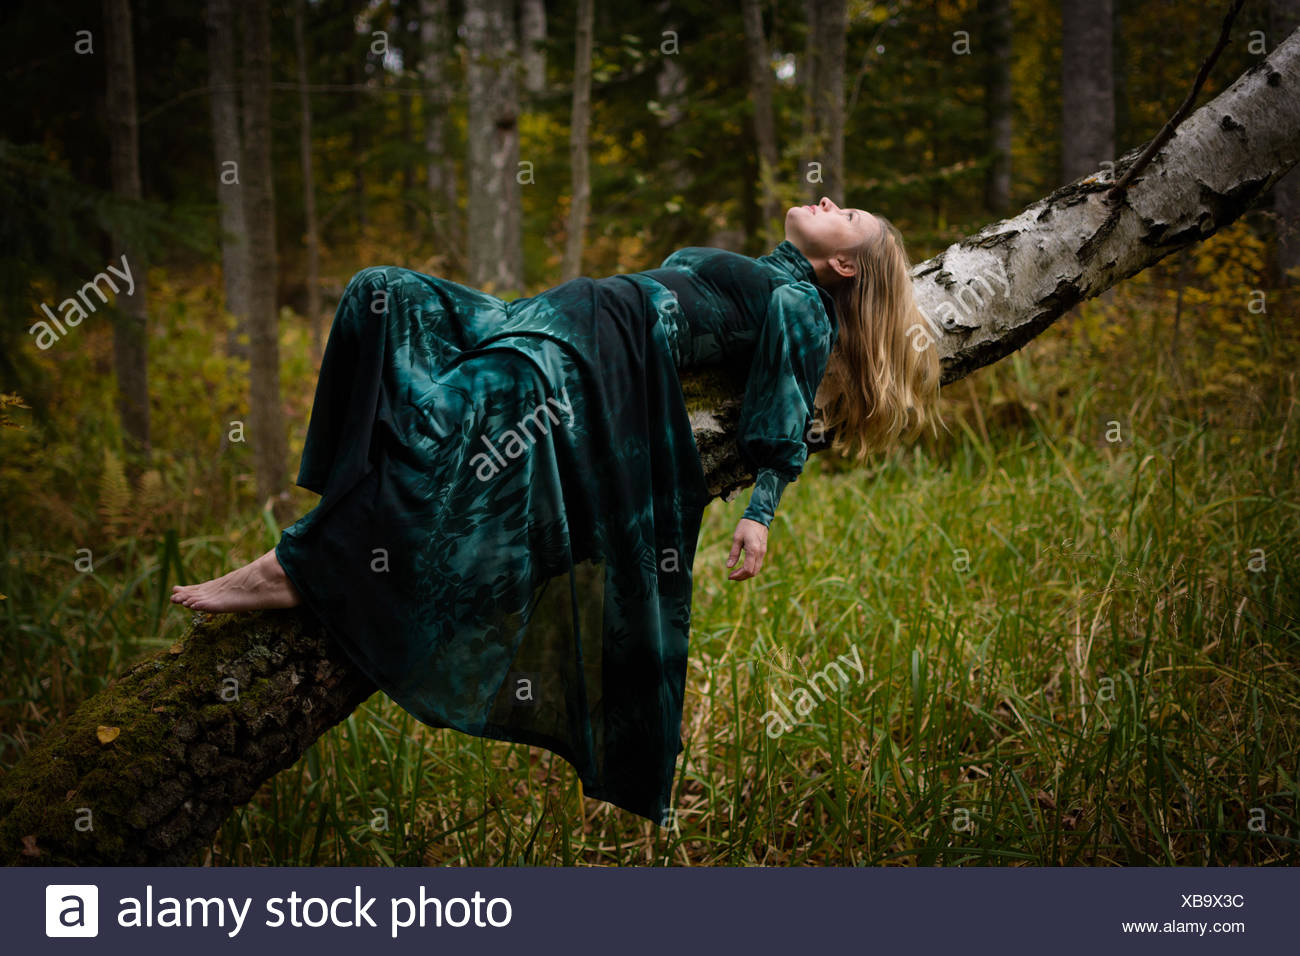 Woman In Green Long Dress Lying On Tree Trunk In Forest - Stock Image